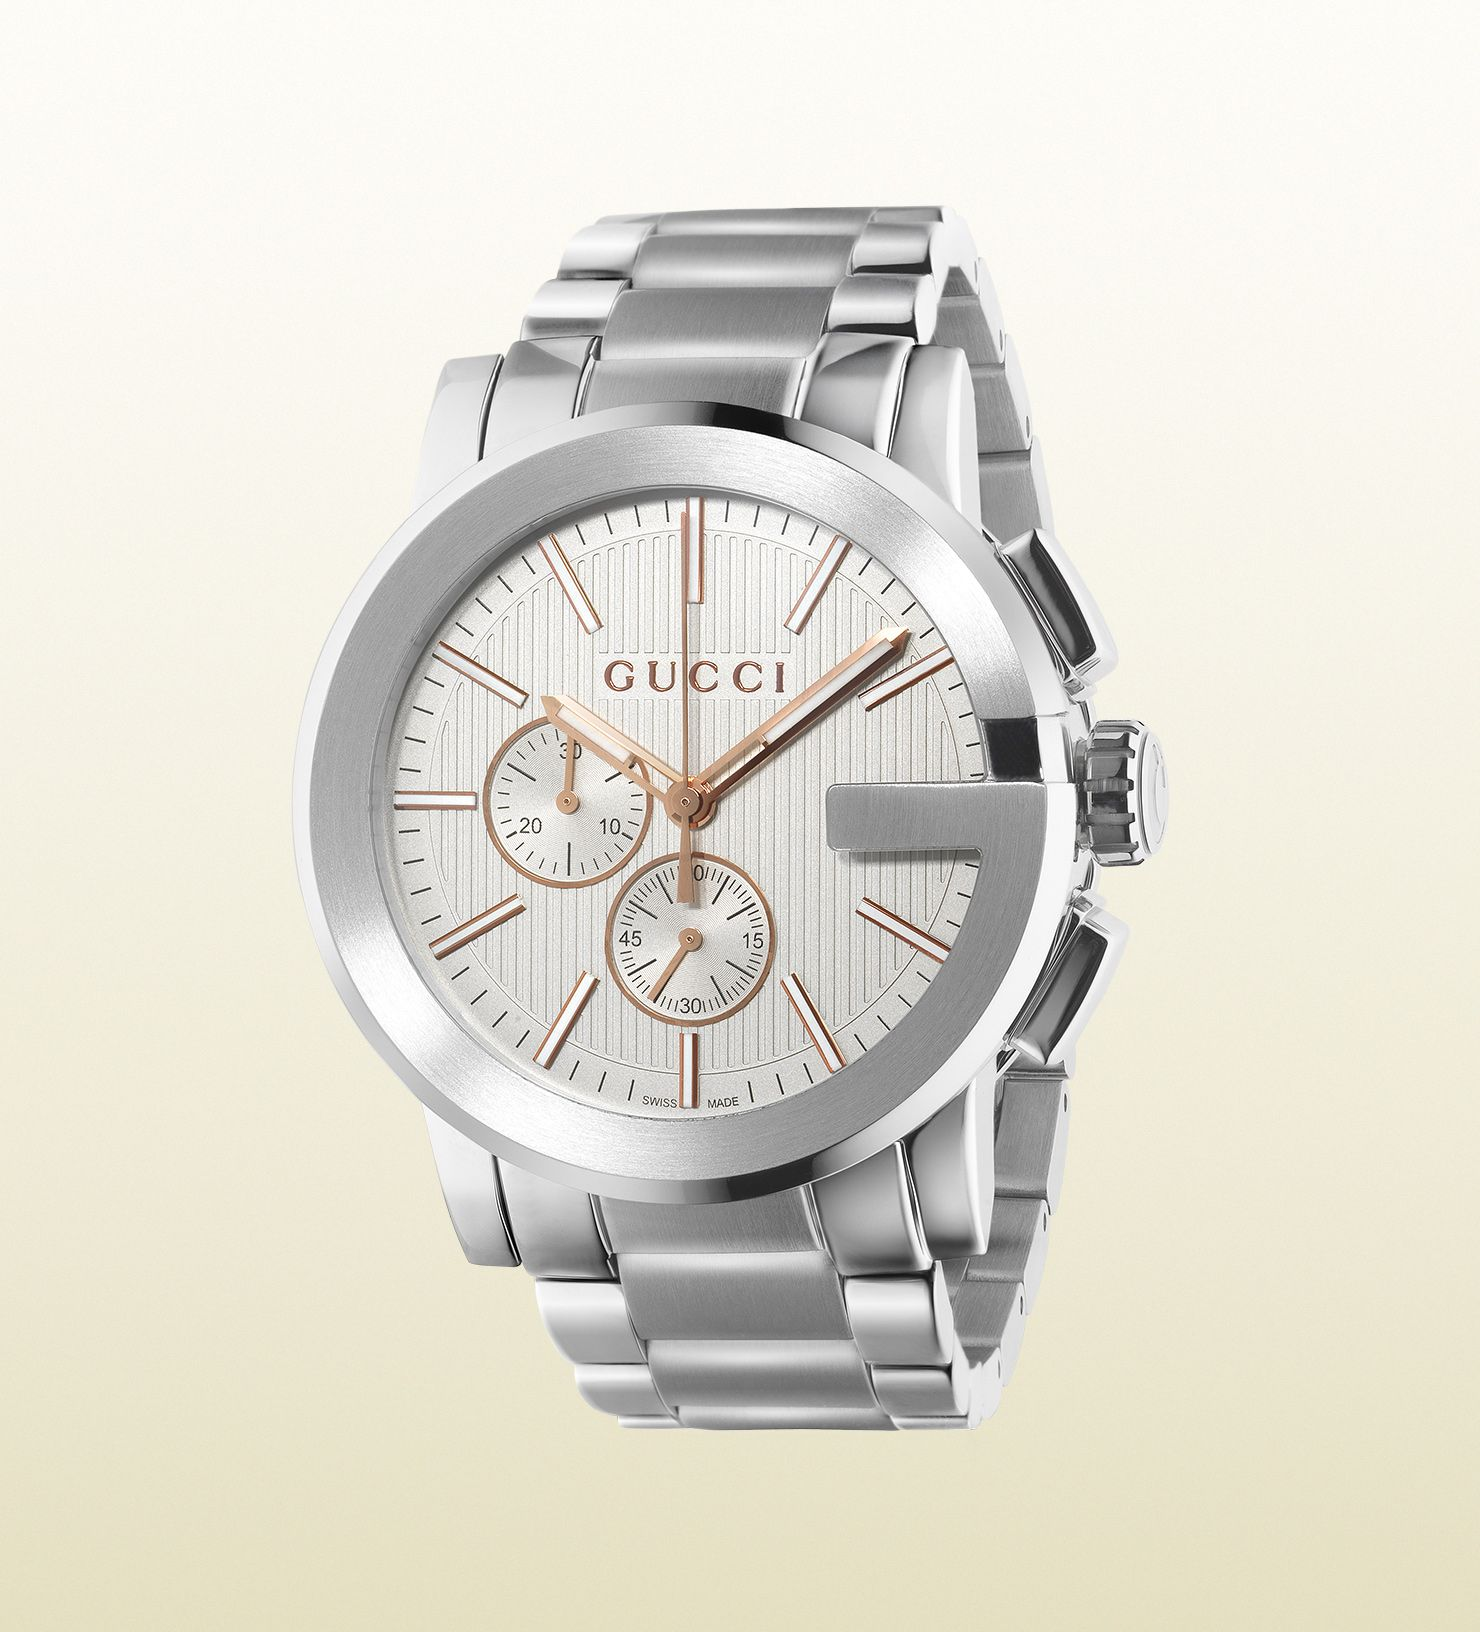 569952067cb Gucci - g-chrono extra large stainless steel watch 367371I16001402 ...